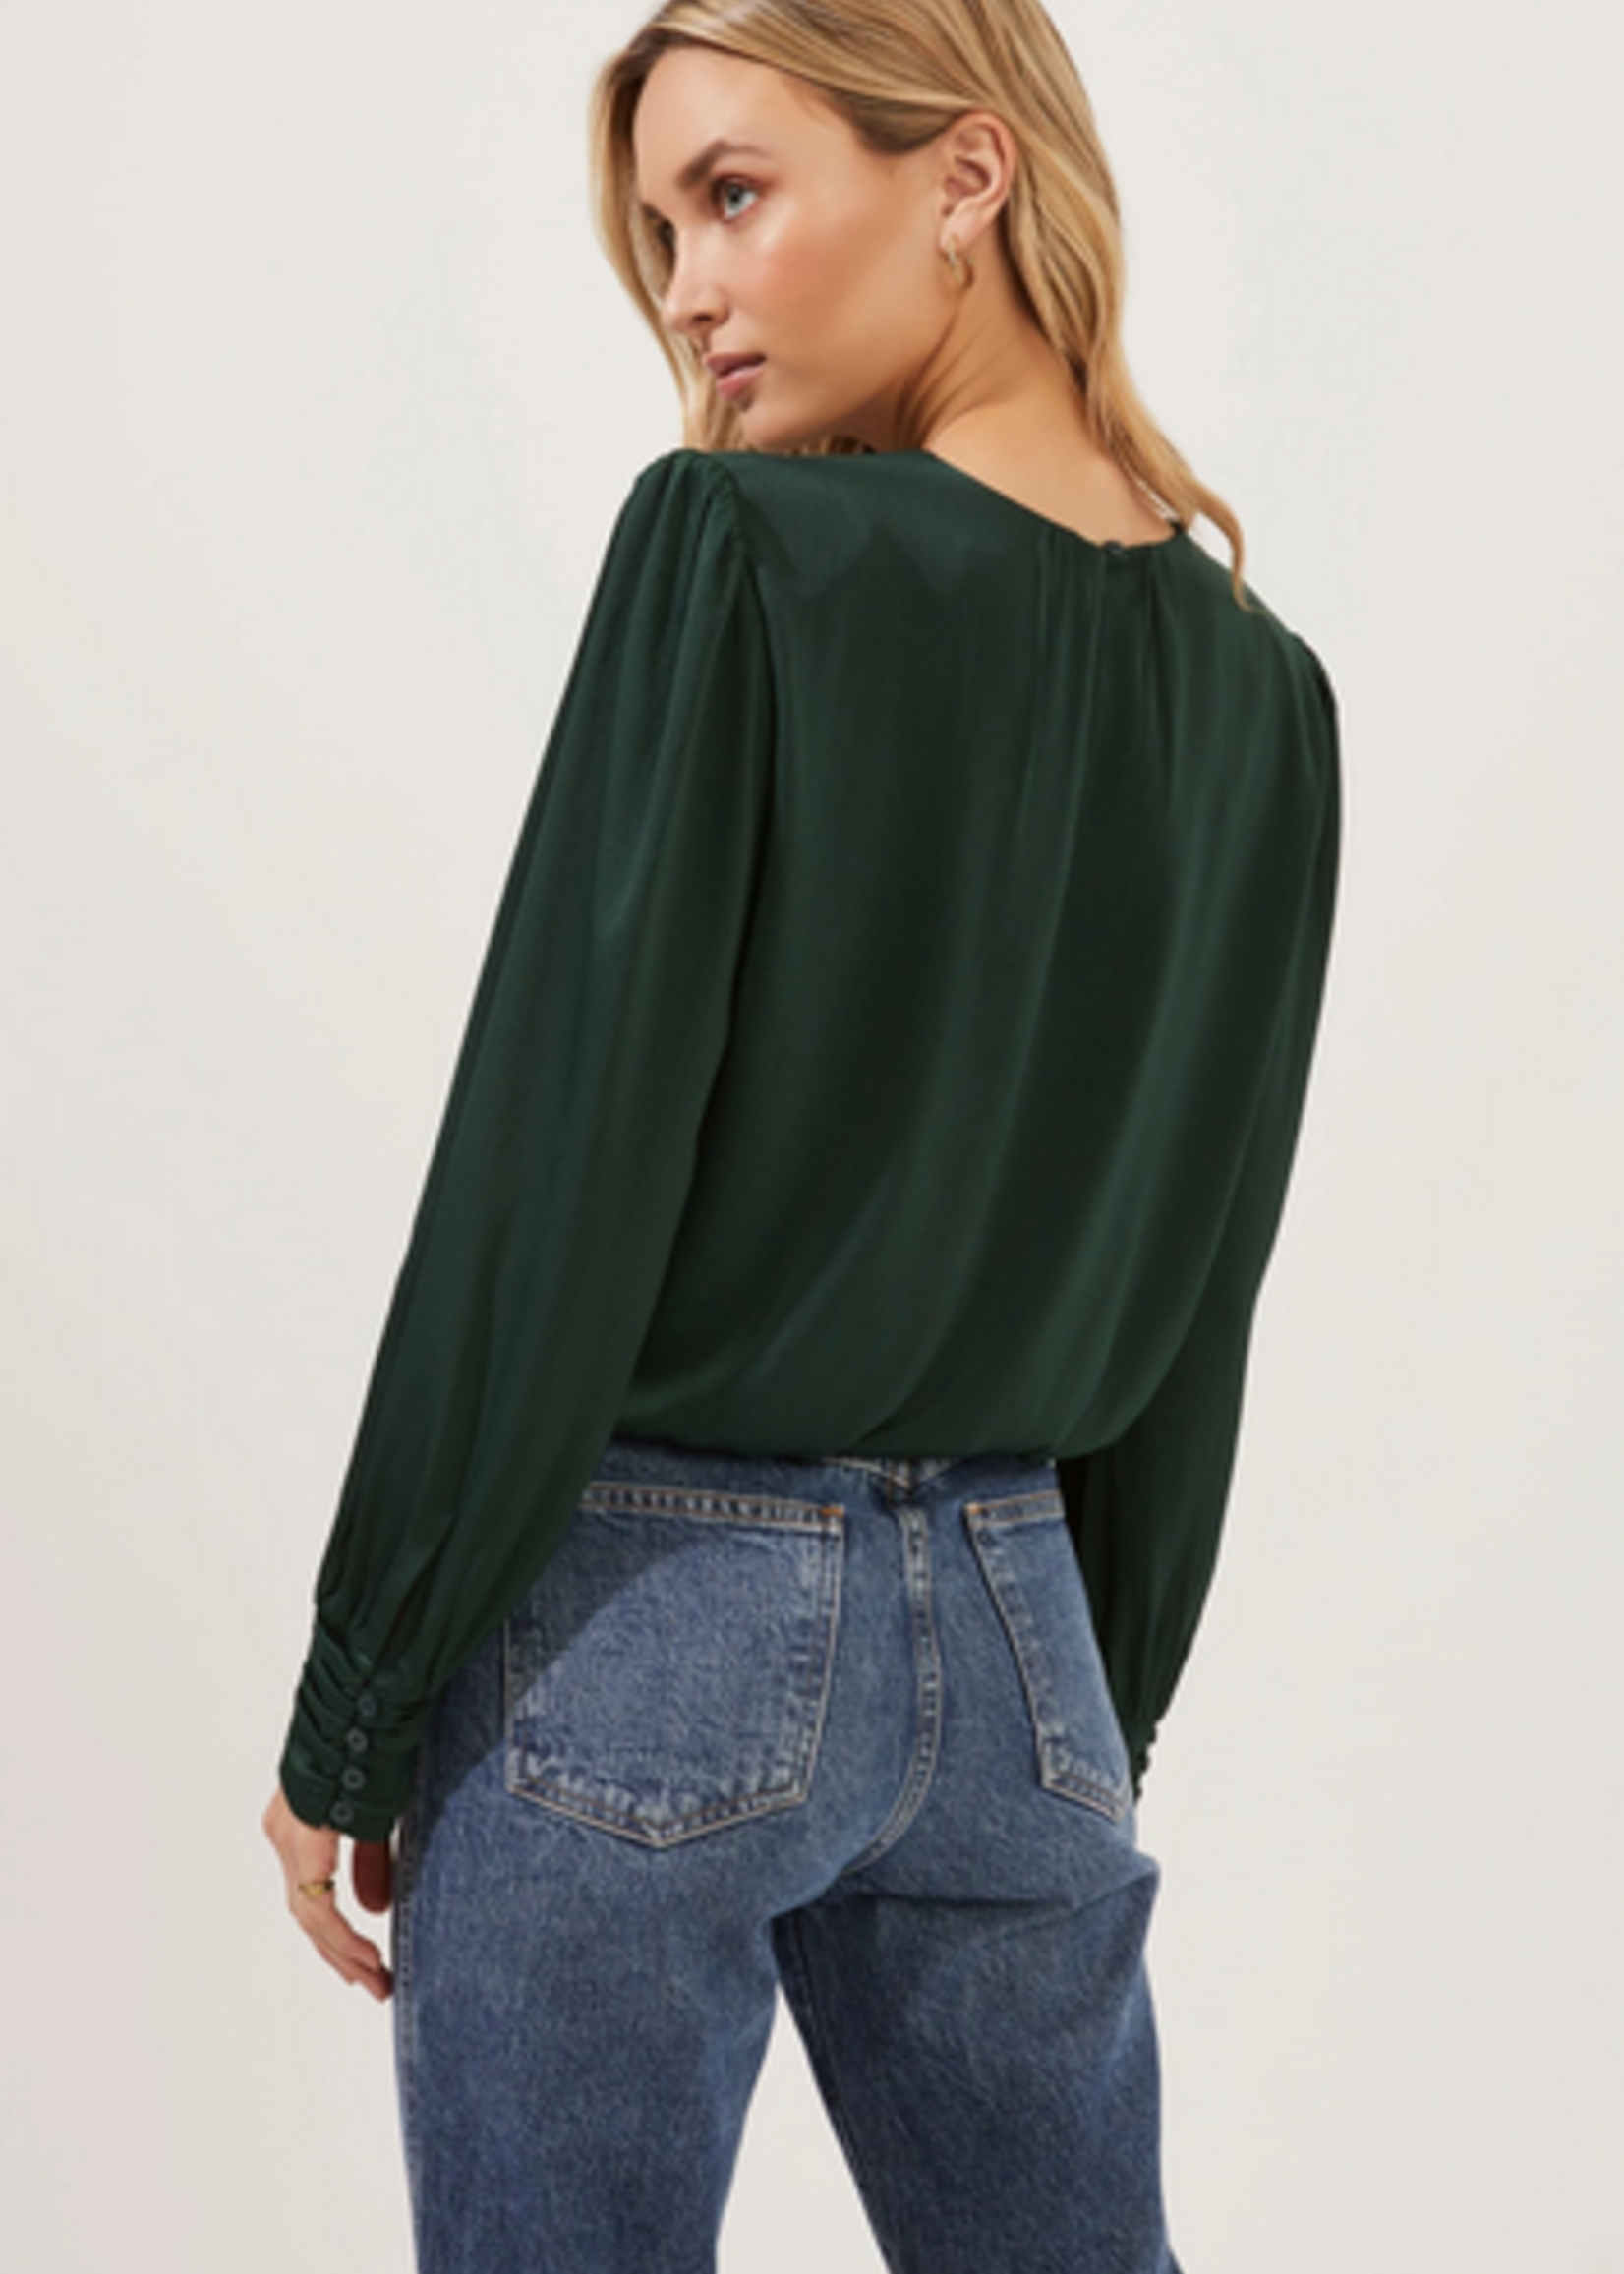 Elitaire Boutique Duchess Top in Green